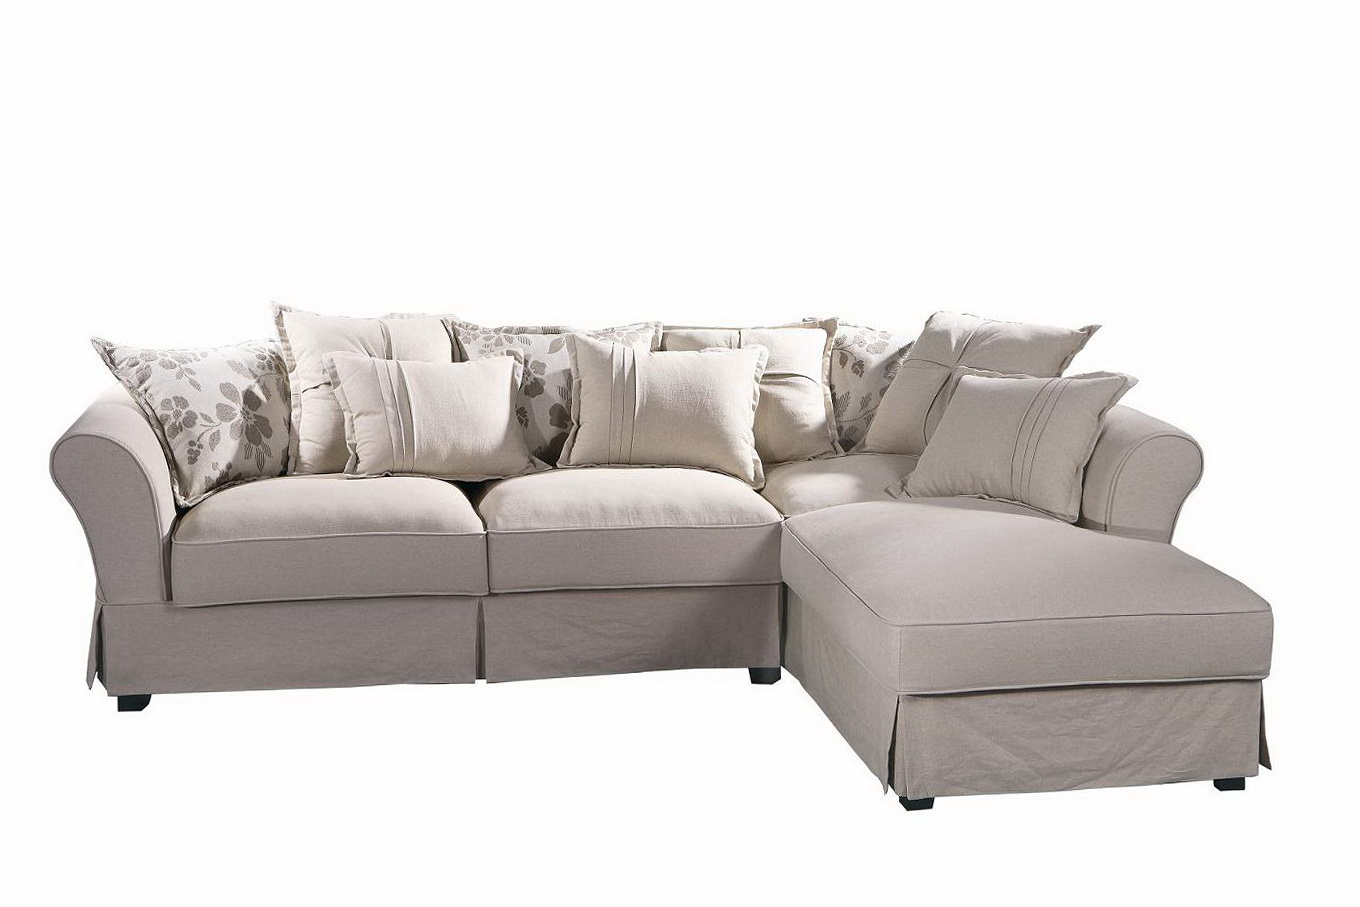 Discount Sectional Sofas Online